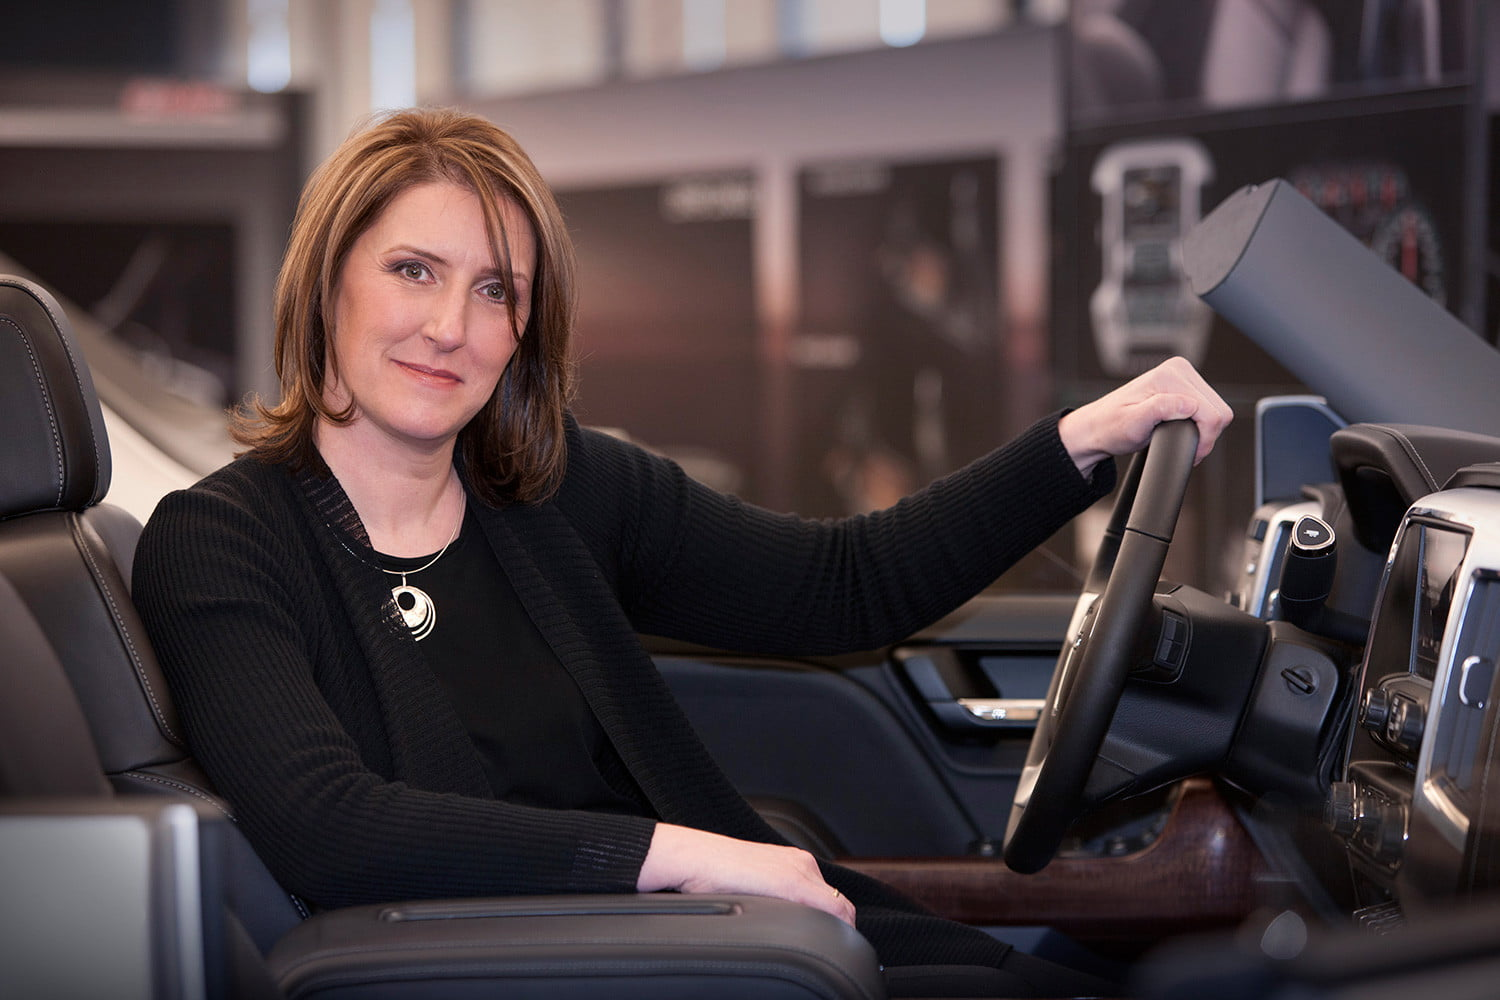 an inside look at automotive design buick gm helenemsley 02